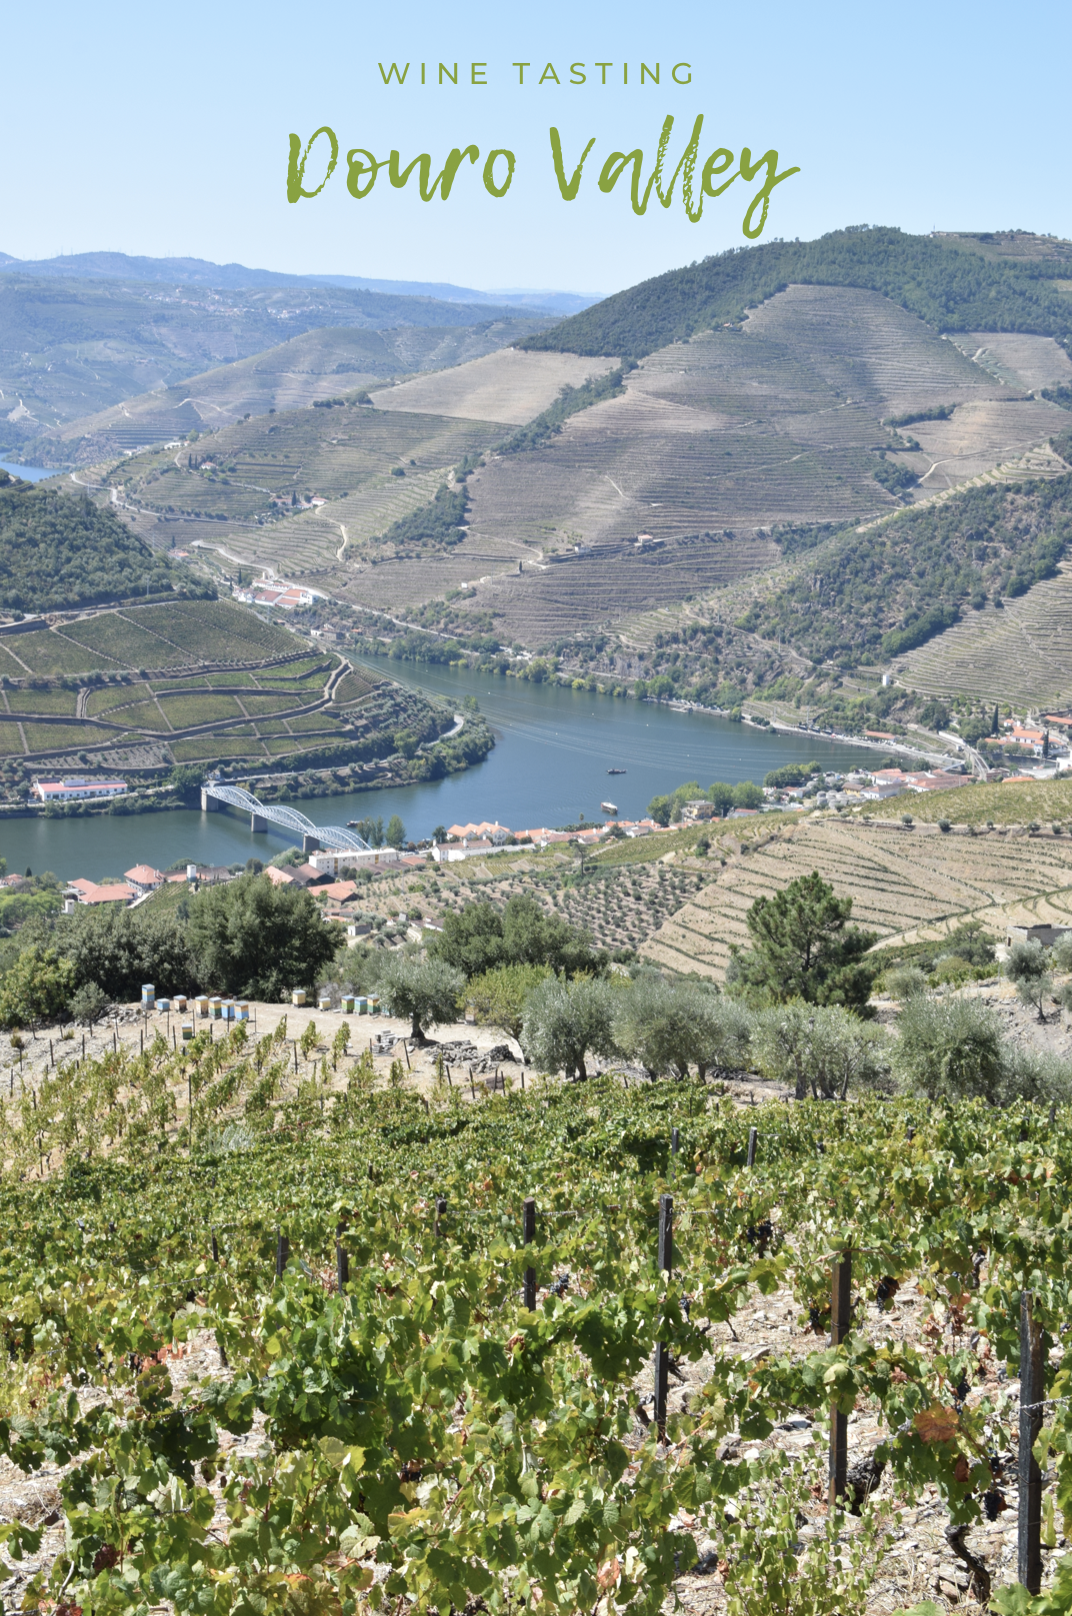 winetasting-douro-pin.jpg